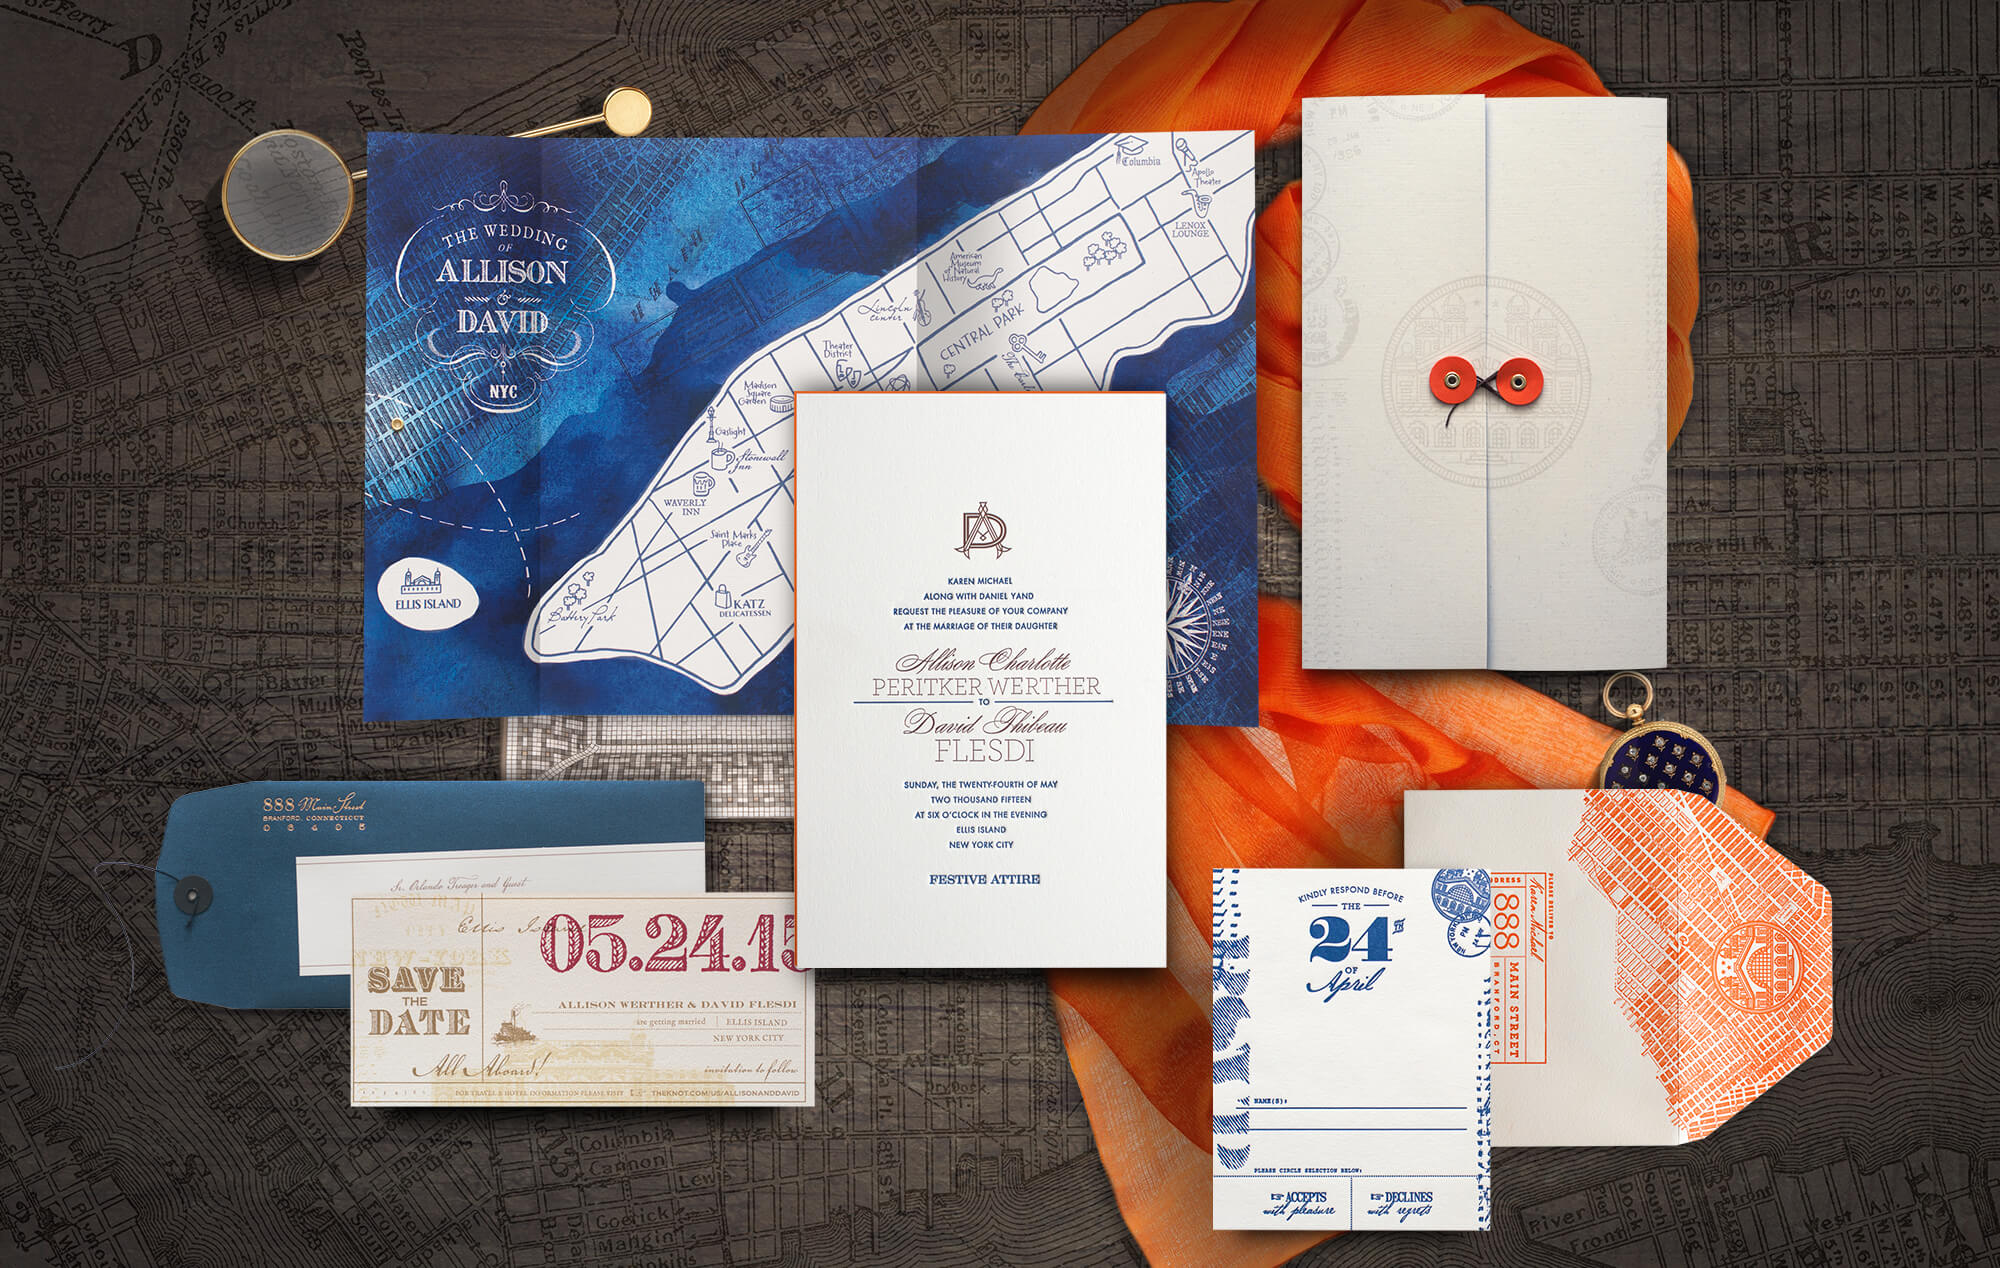 Ellis Island New York City wedding invitation